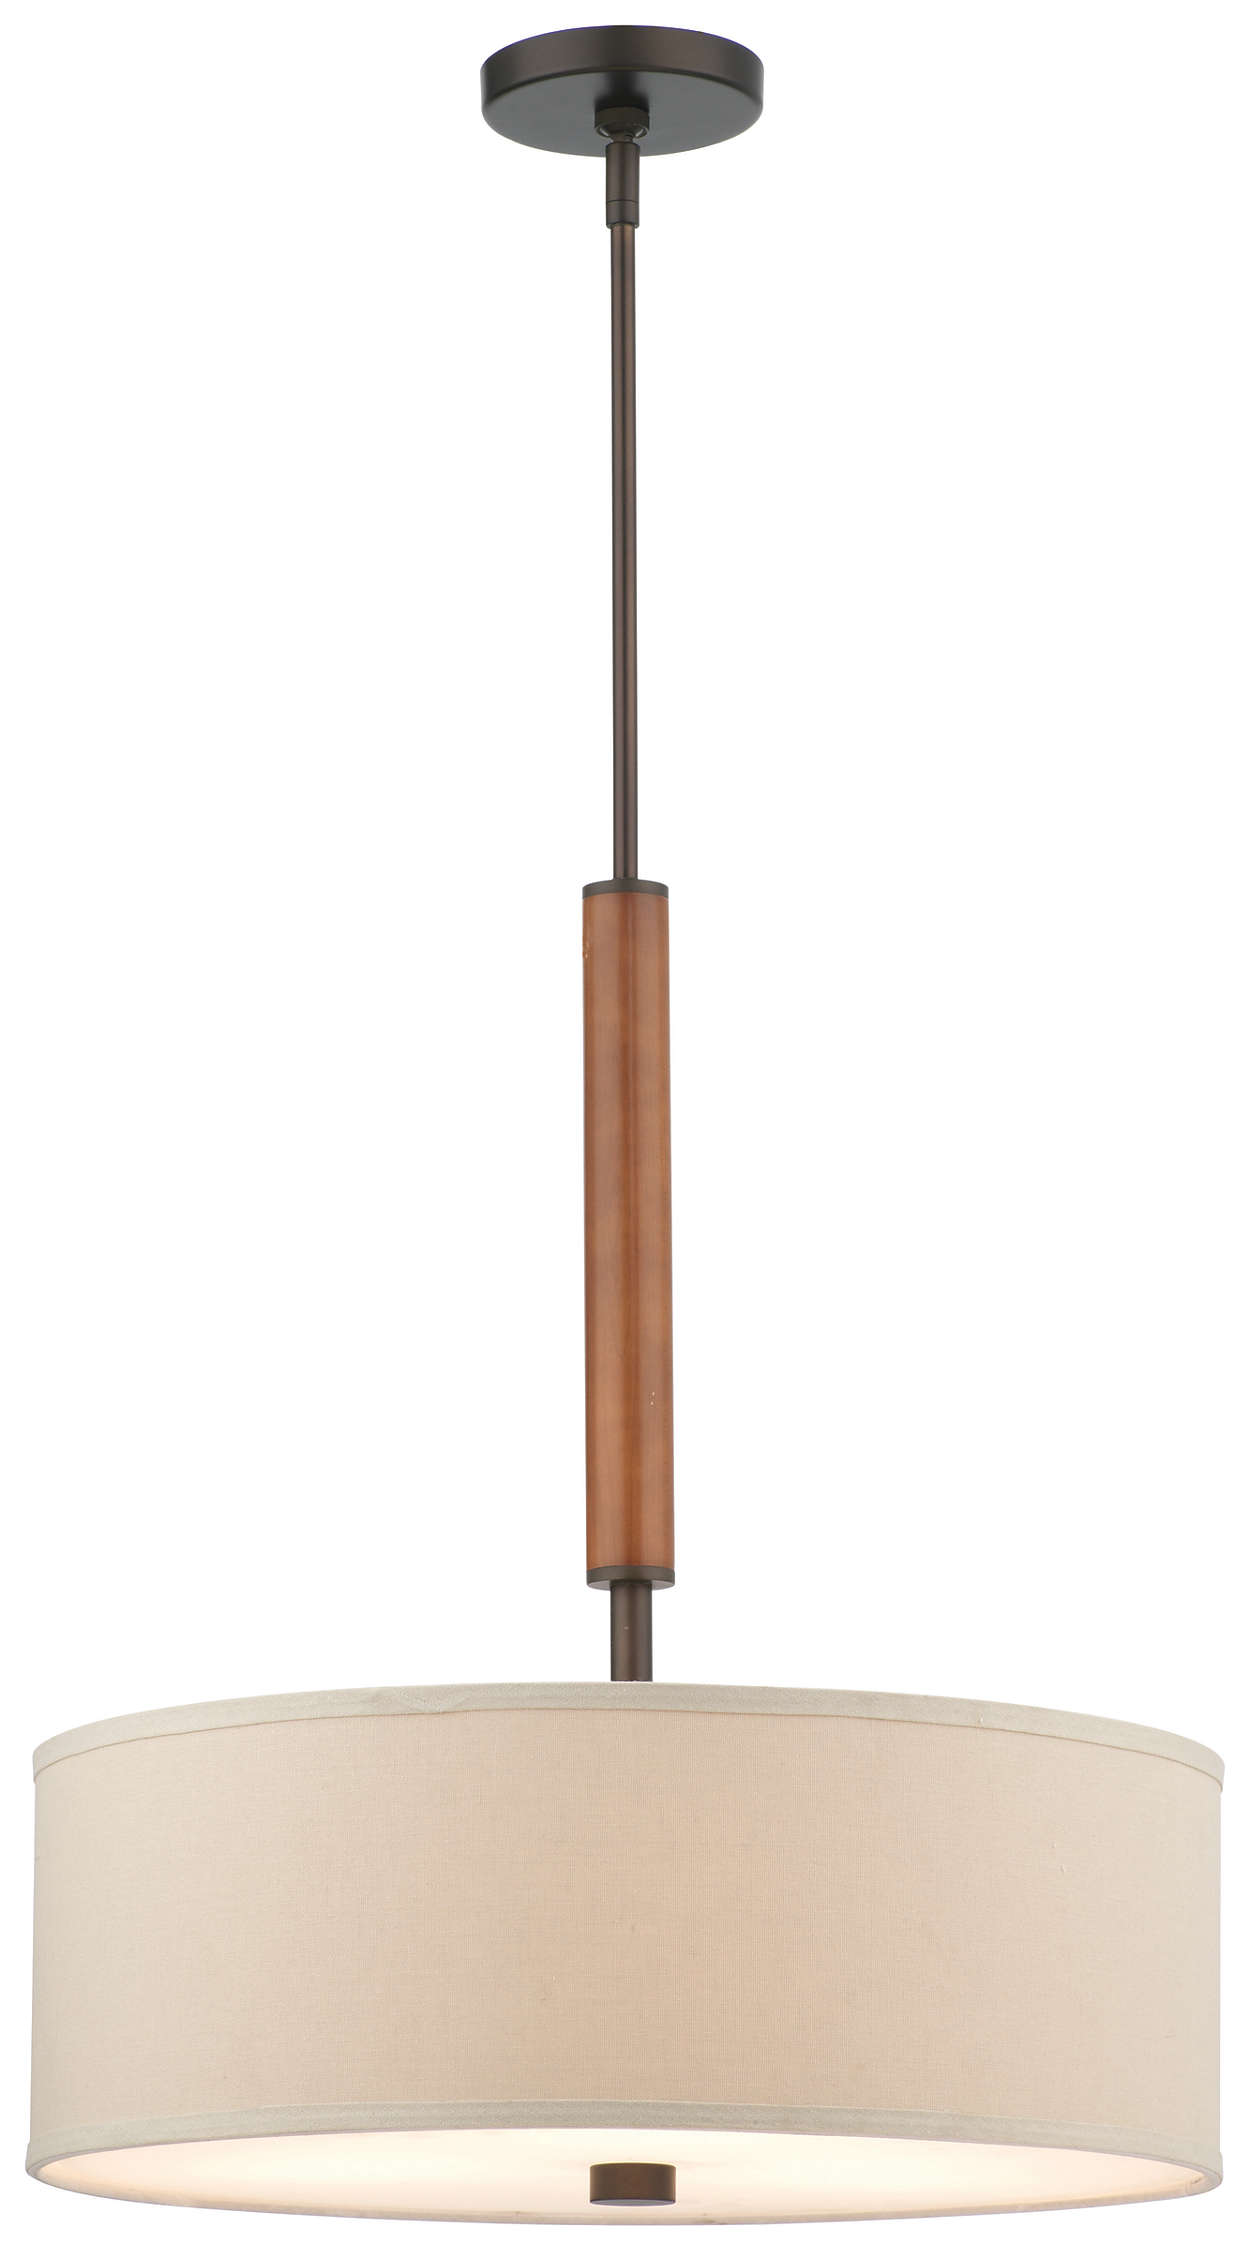 Embarcadero 3-light Pendant, Sorrel Bronze finish